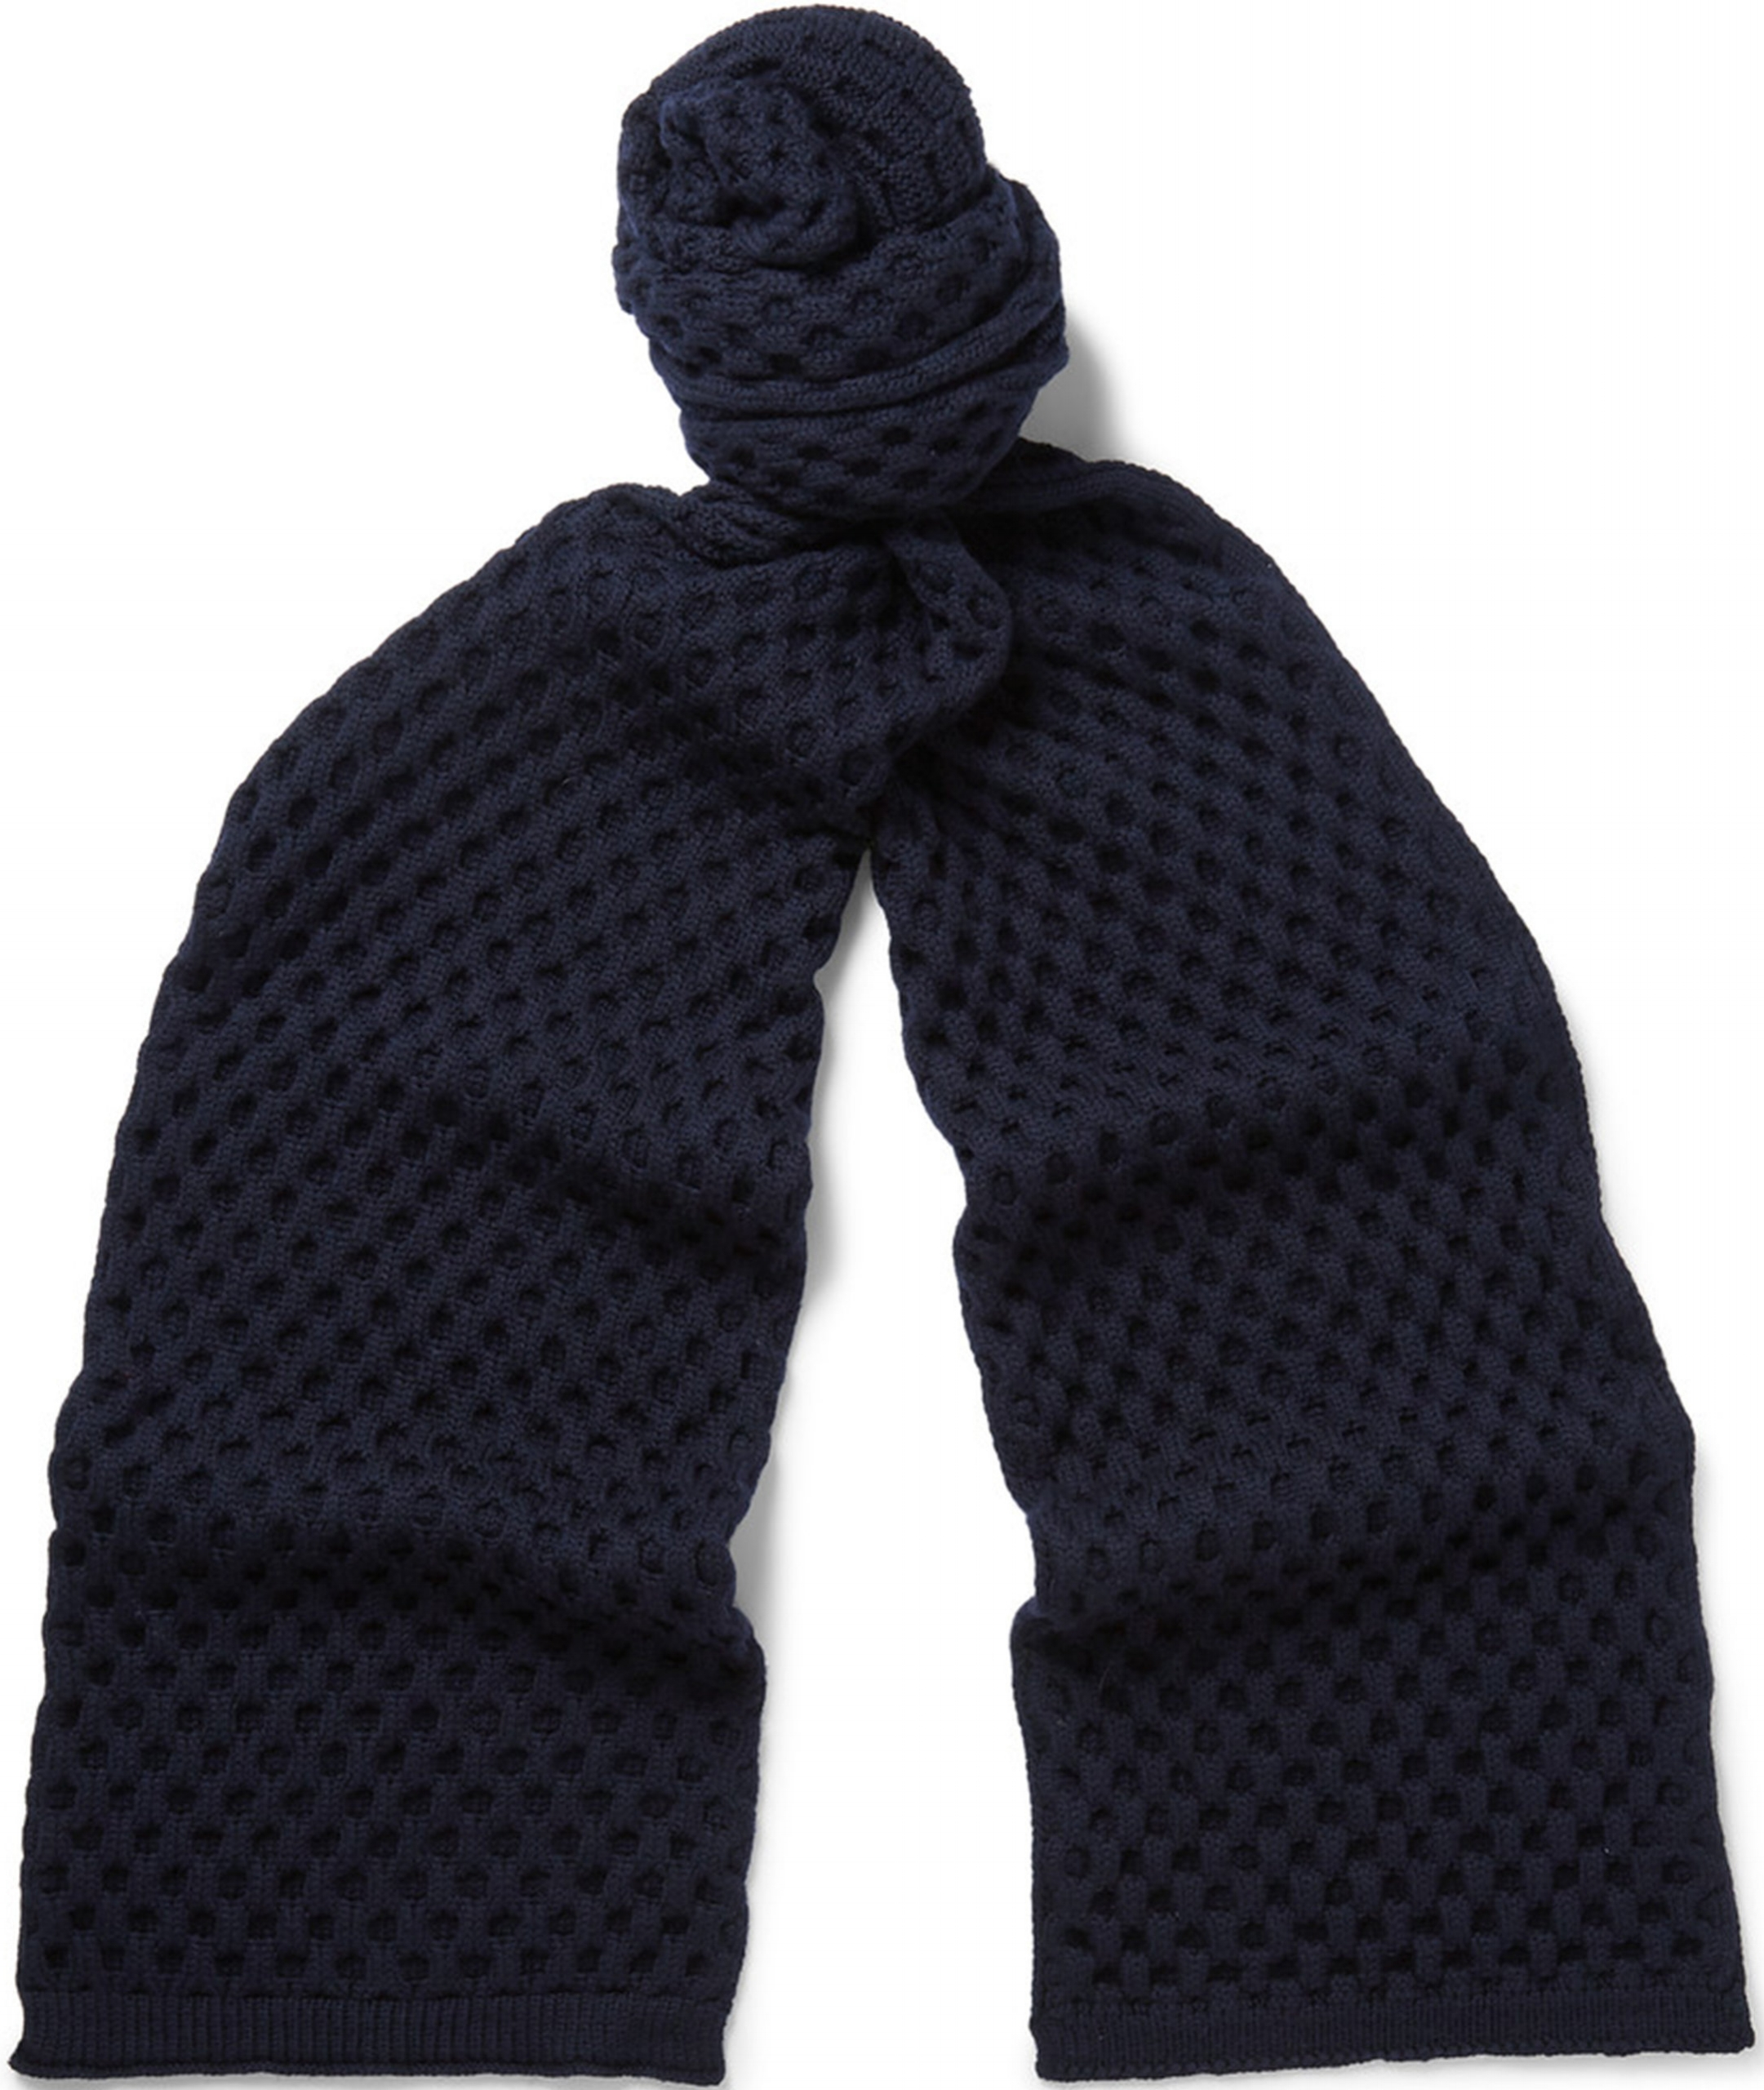 Jil Sander Blue Honeycomb-knit Wool Scarf from Mr. Porter, $365